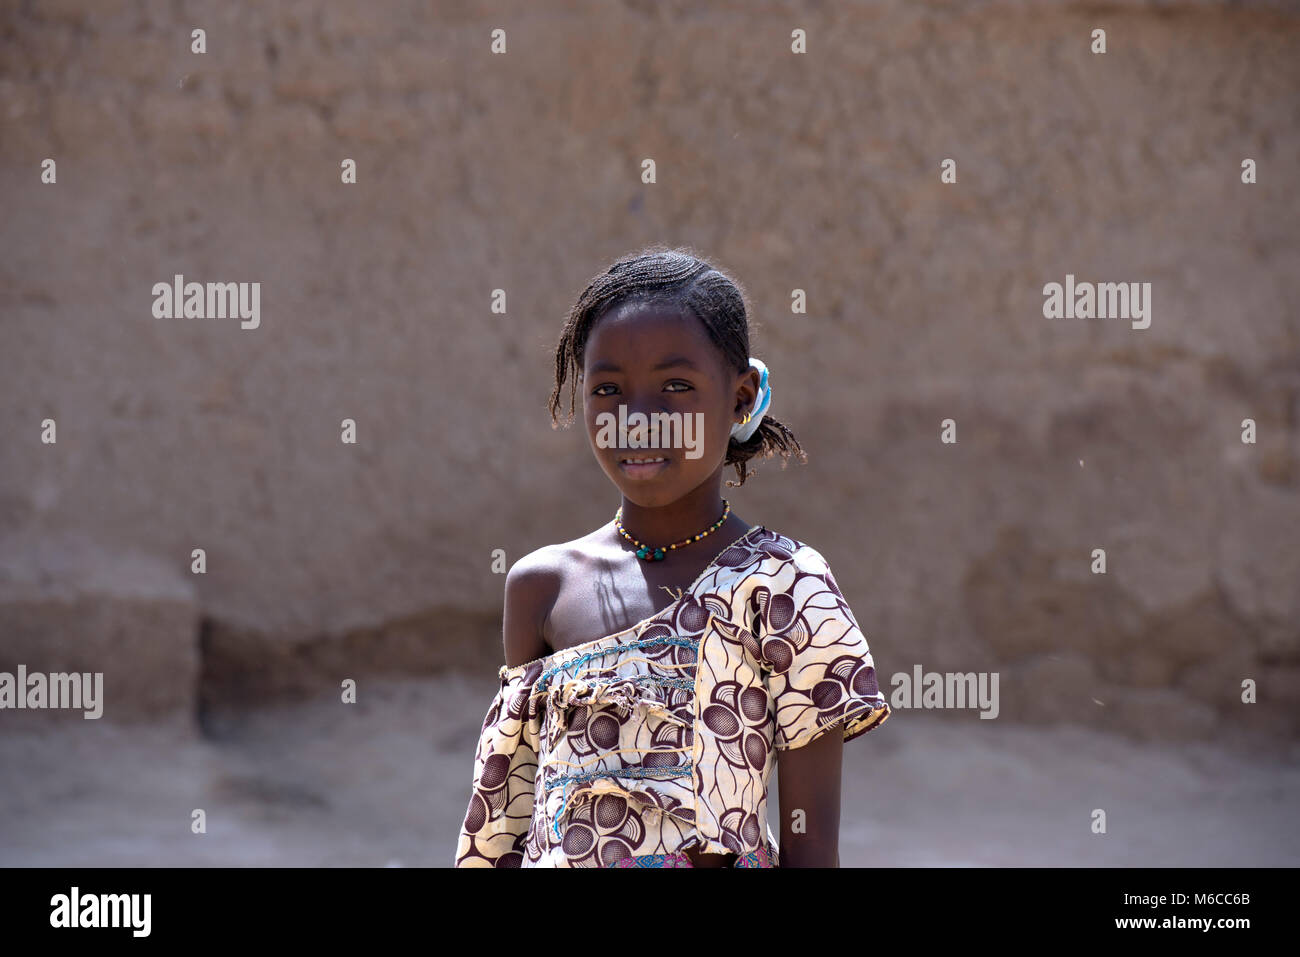 A young, ethnic, indigenous Fulani village girl who has never attended school. Mali, West Africa. - Stock Image